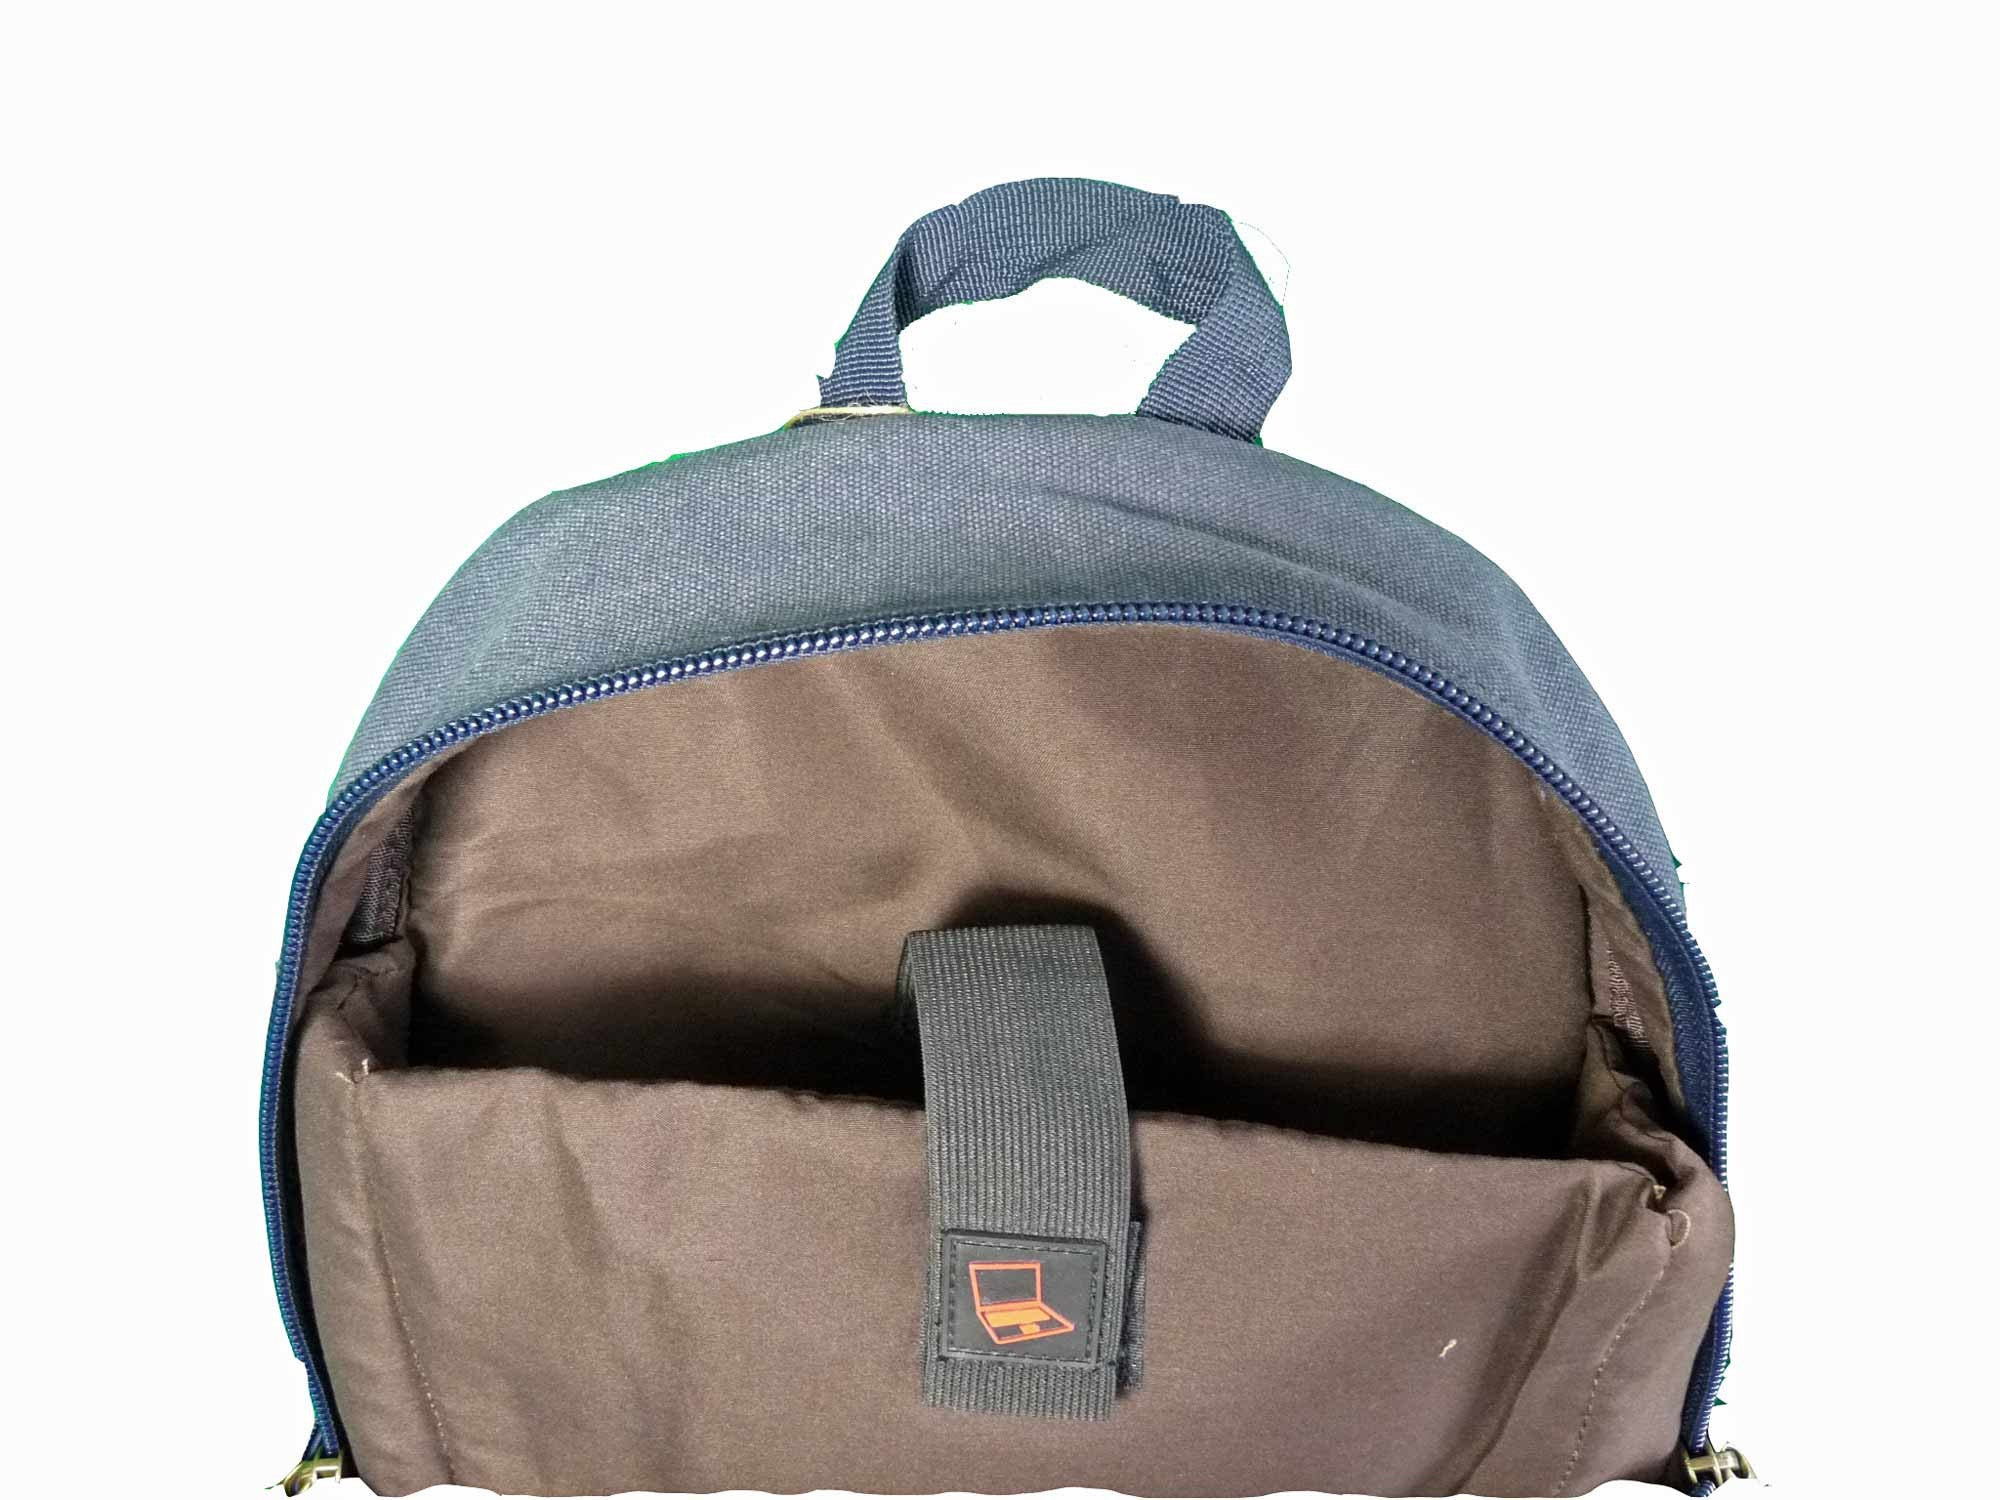 MacBook Air Backpack Rucksack Bag RL25N laptop view